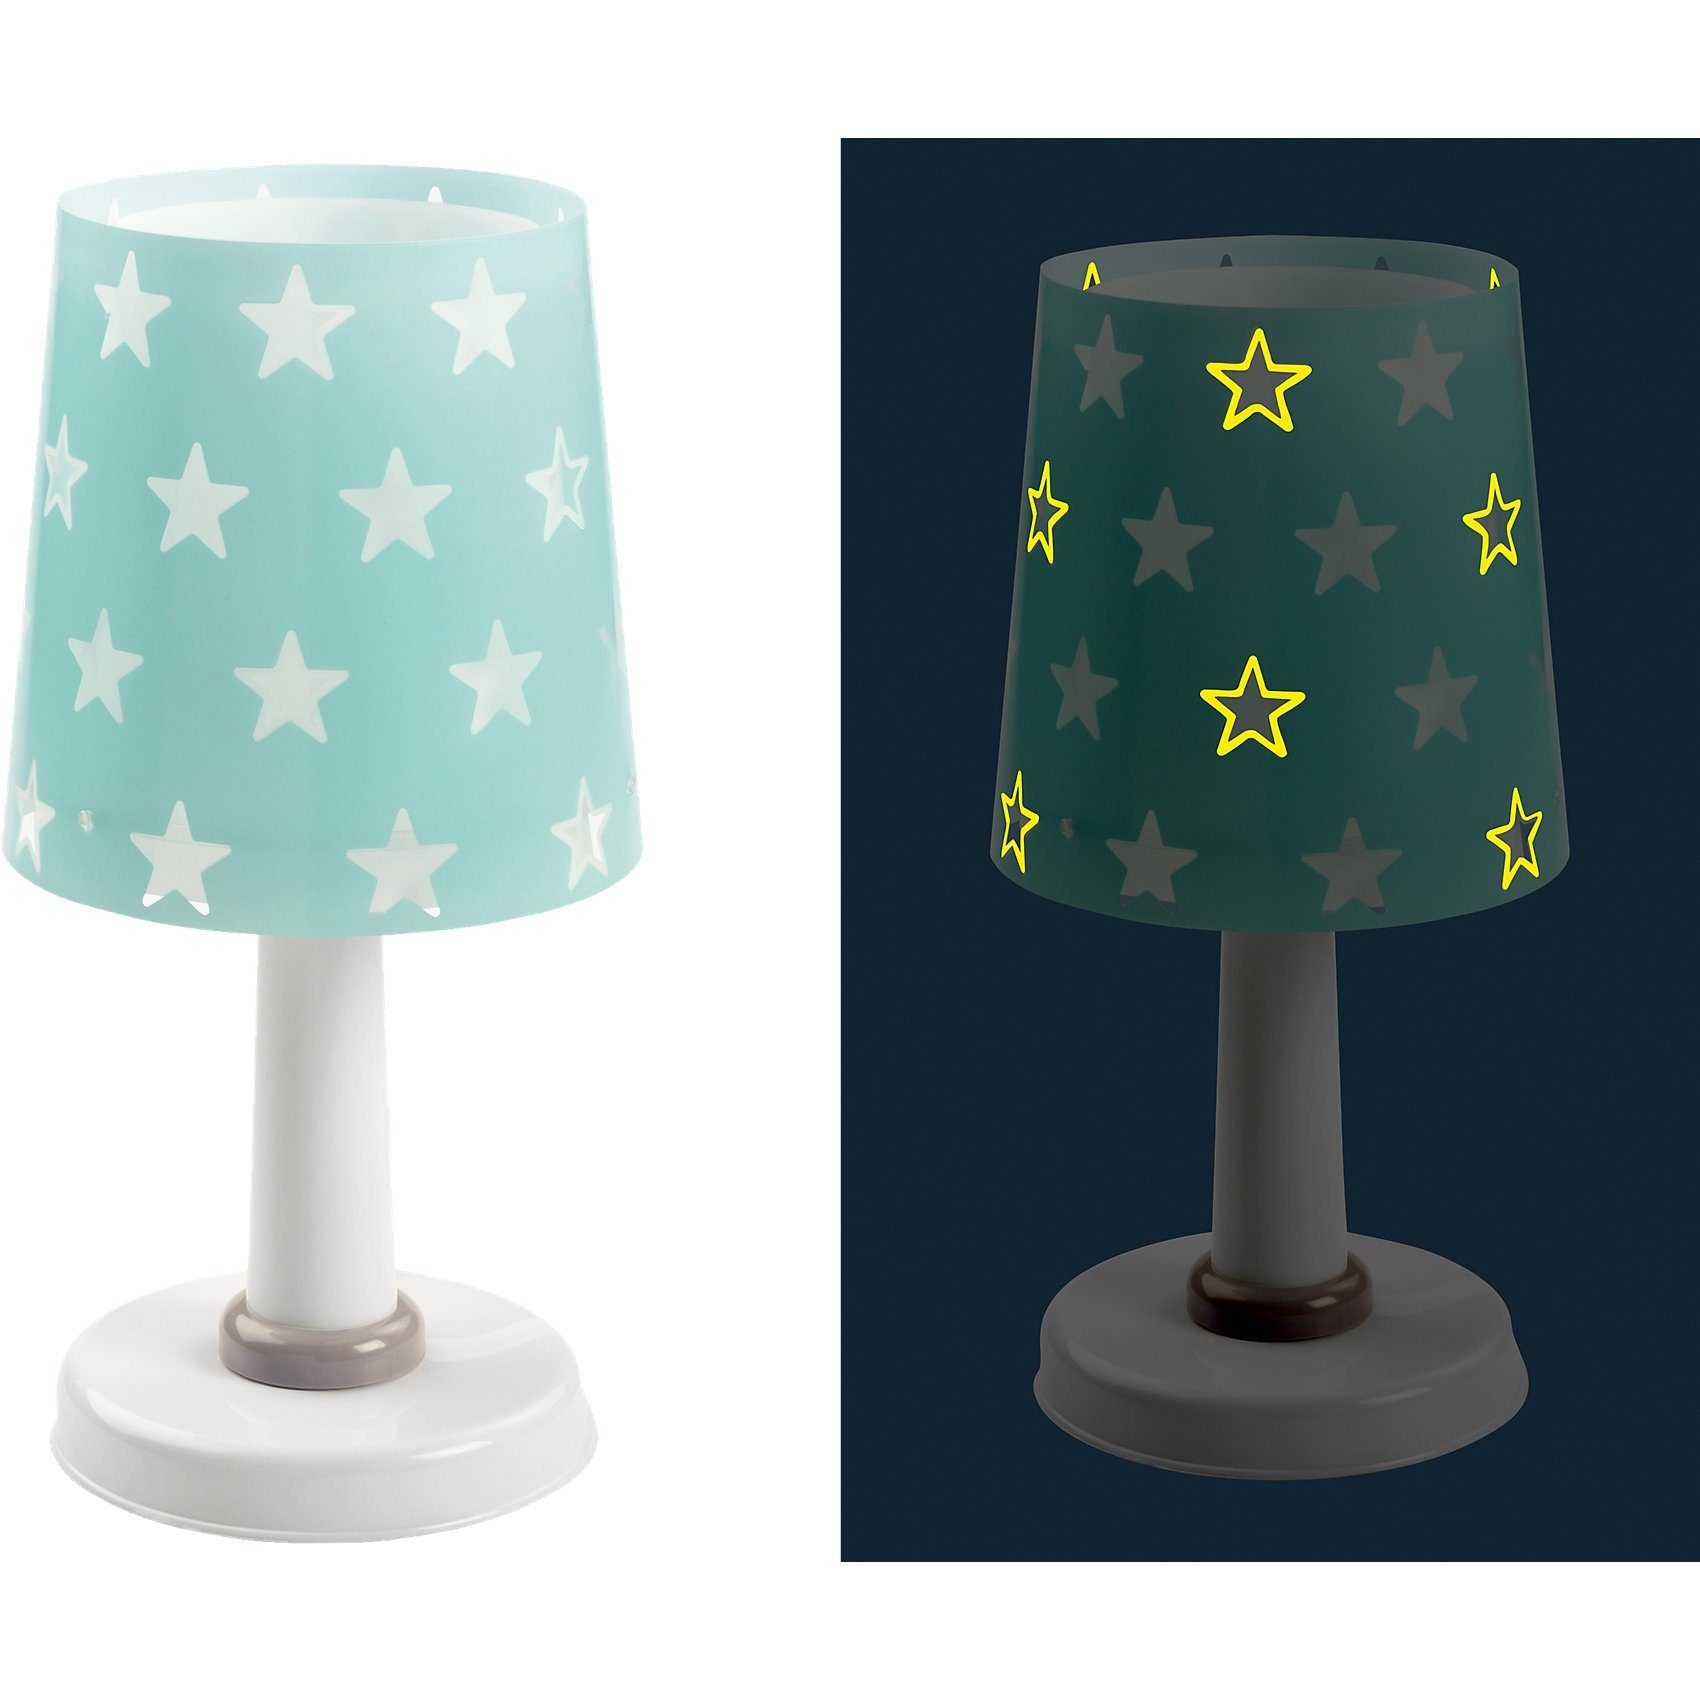 Dalber Tischlampe STARS, Glow in the dark, türkis